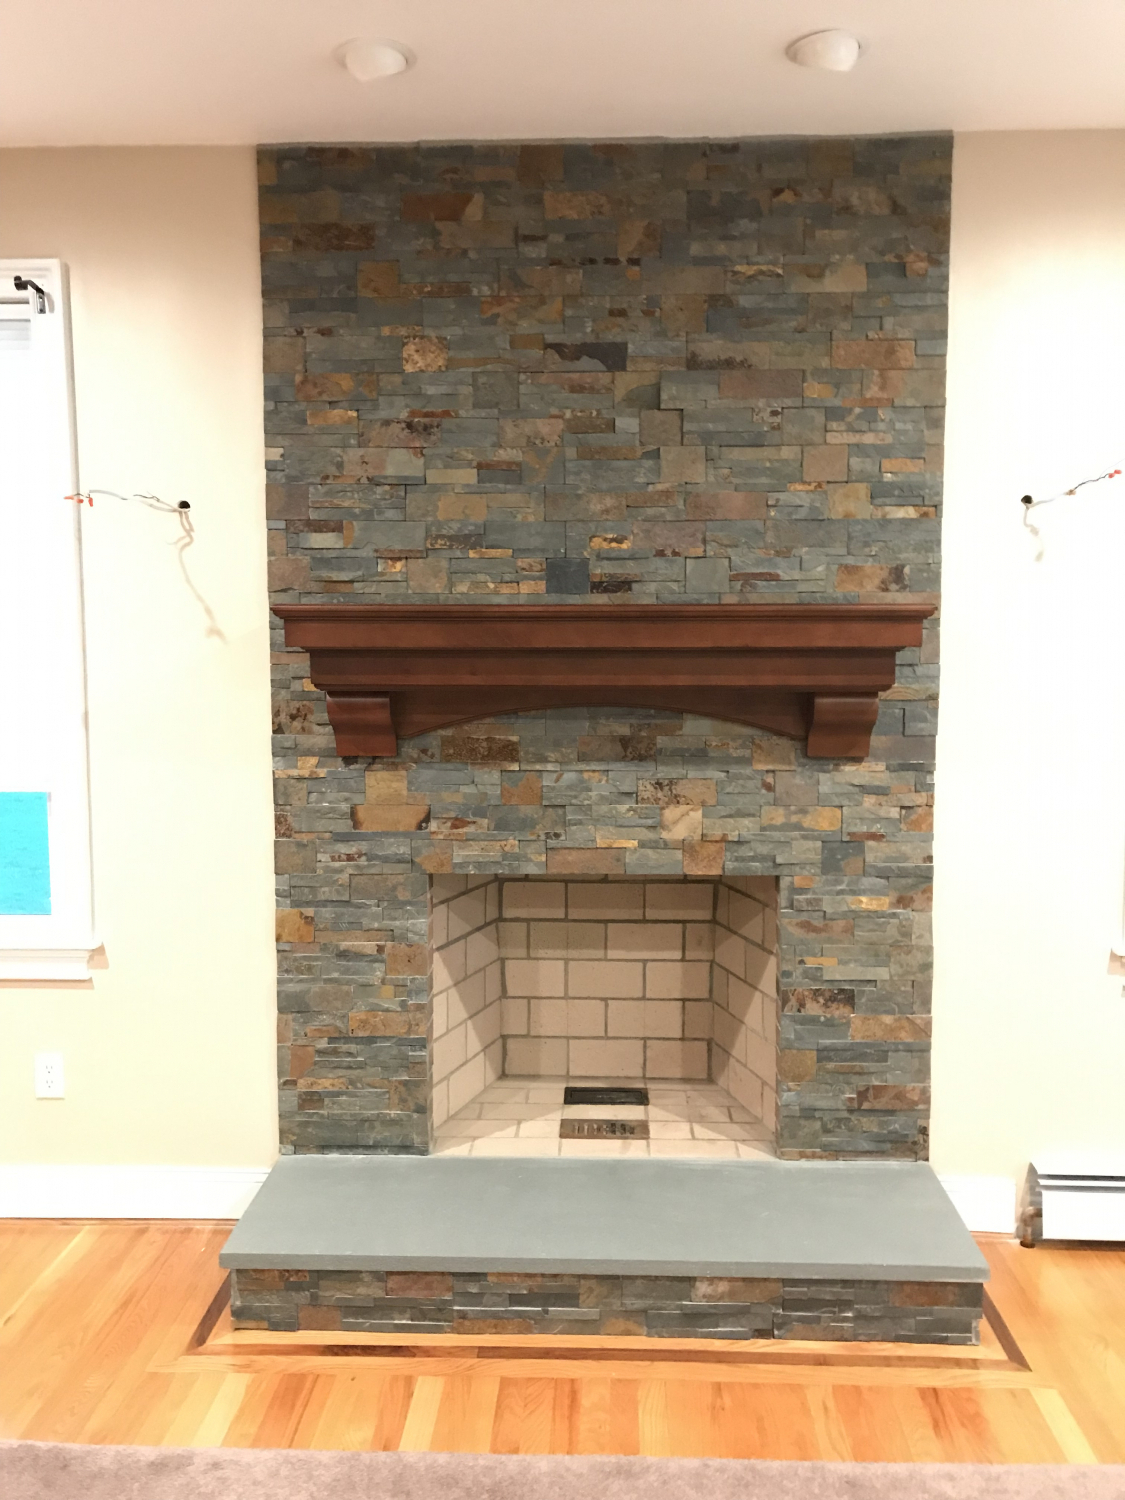 ff1ae009ef6af We were pleasantly surprised when our new mantel arrived. It is absolutely  beautiful. The quality is exceptional. My husband could not believe the way  it ...